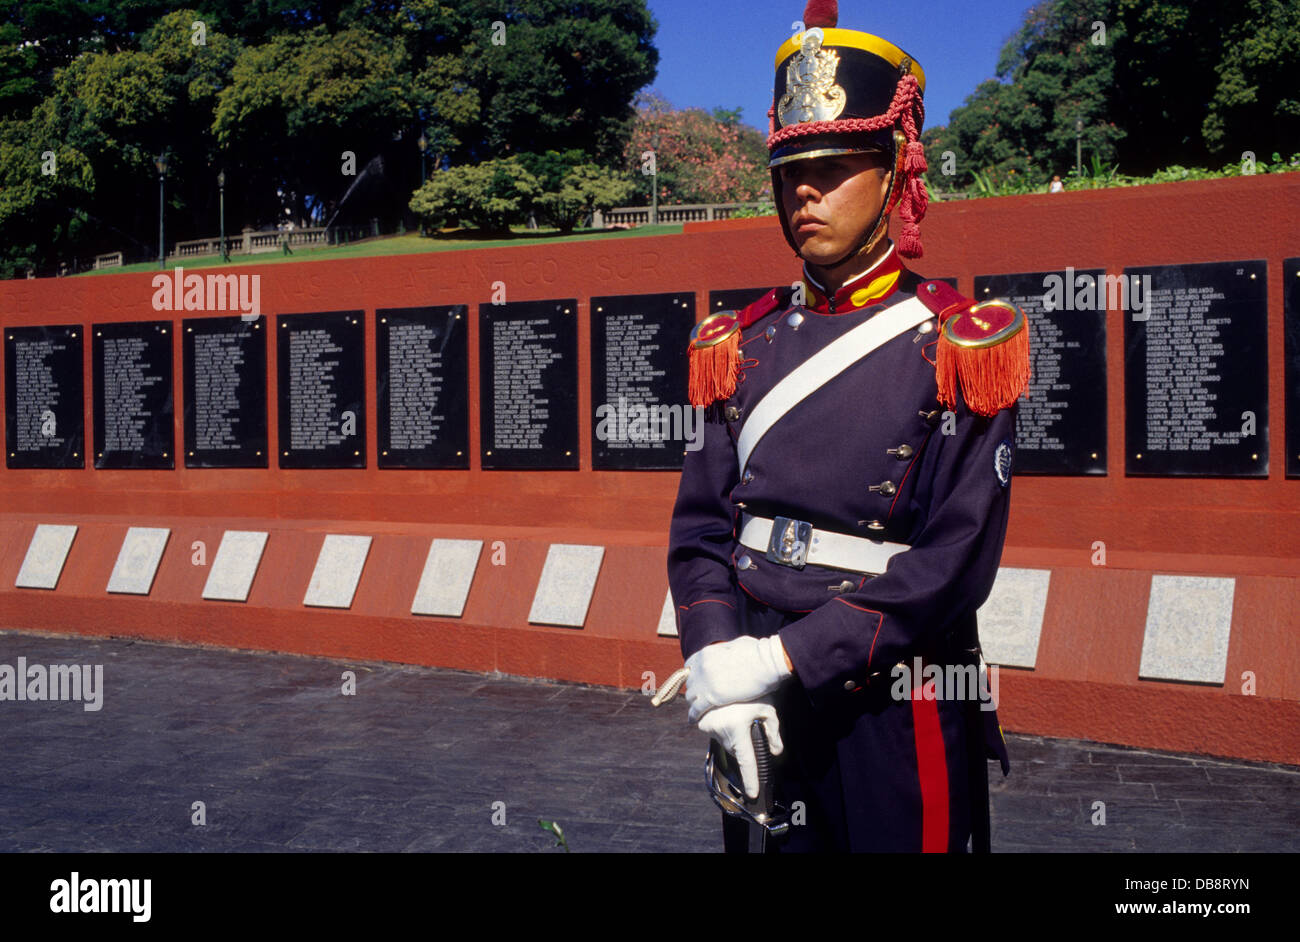 Monument to Falklands war heroes. Plaza San Martín. Buenos Aires. Argentina. - Stock Image